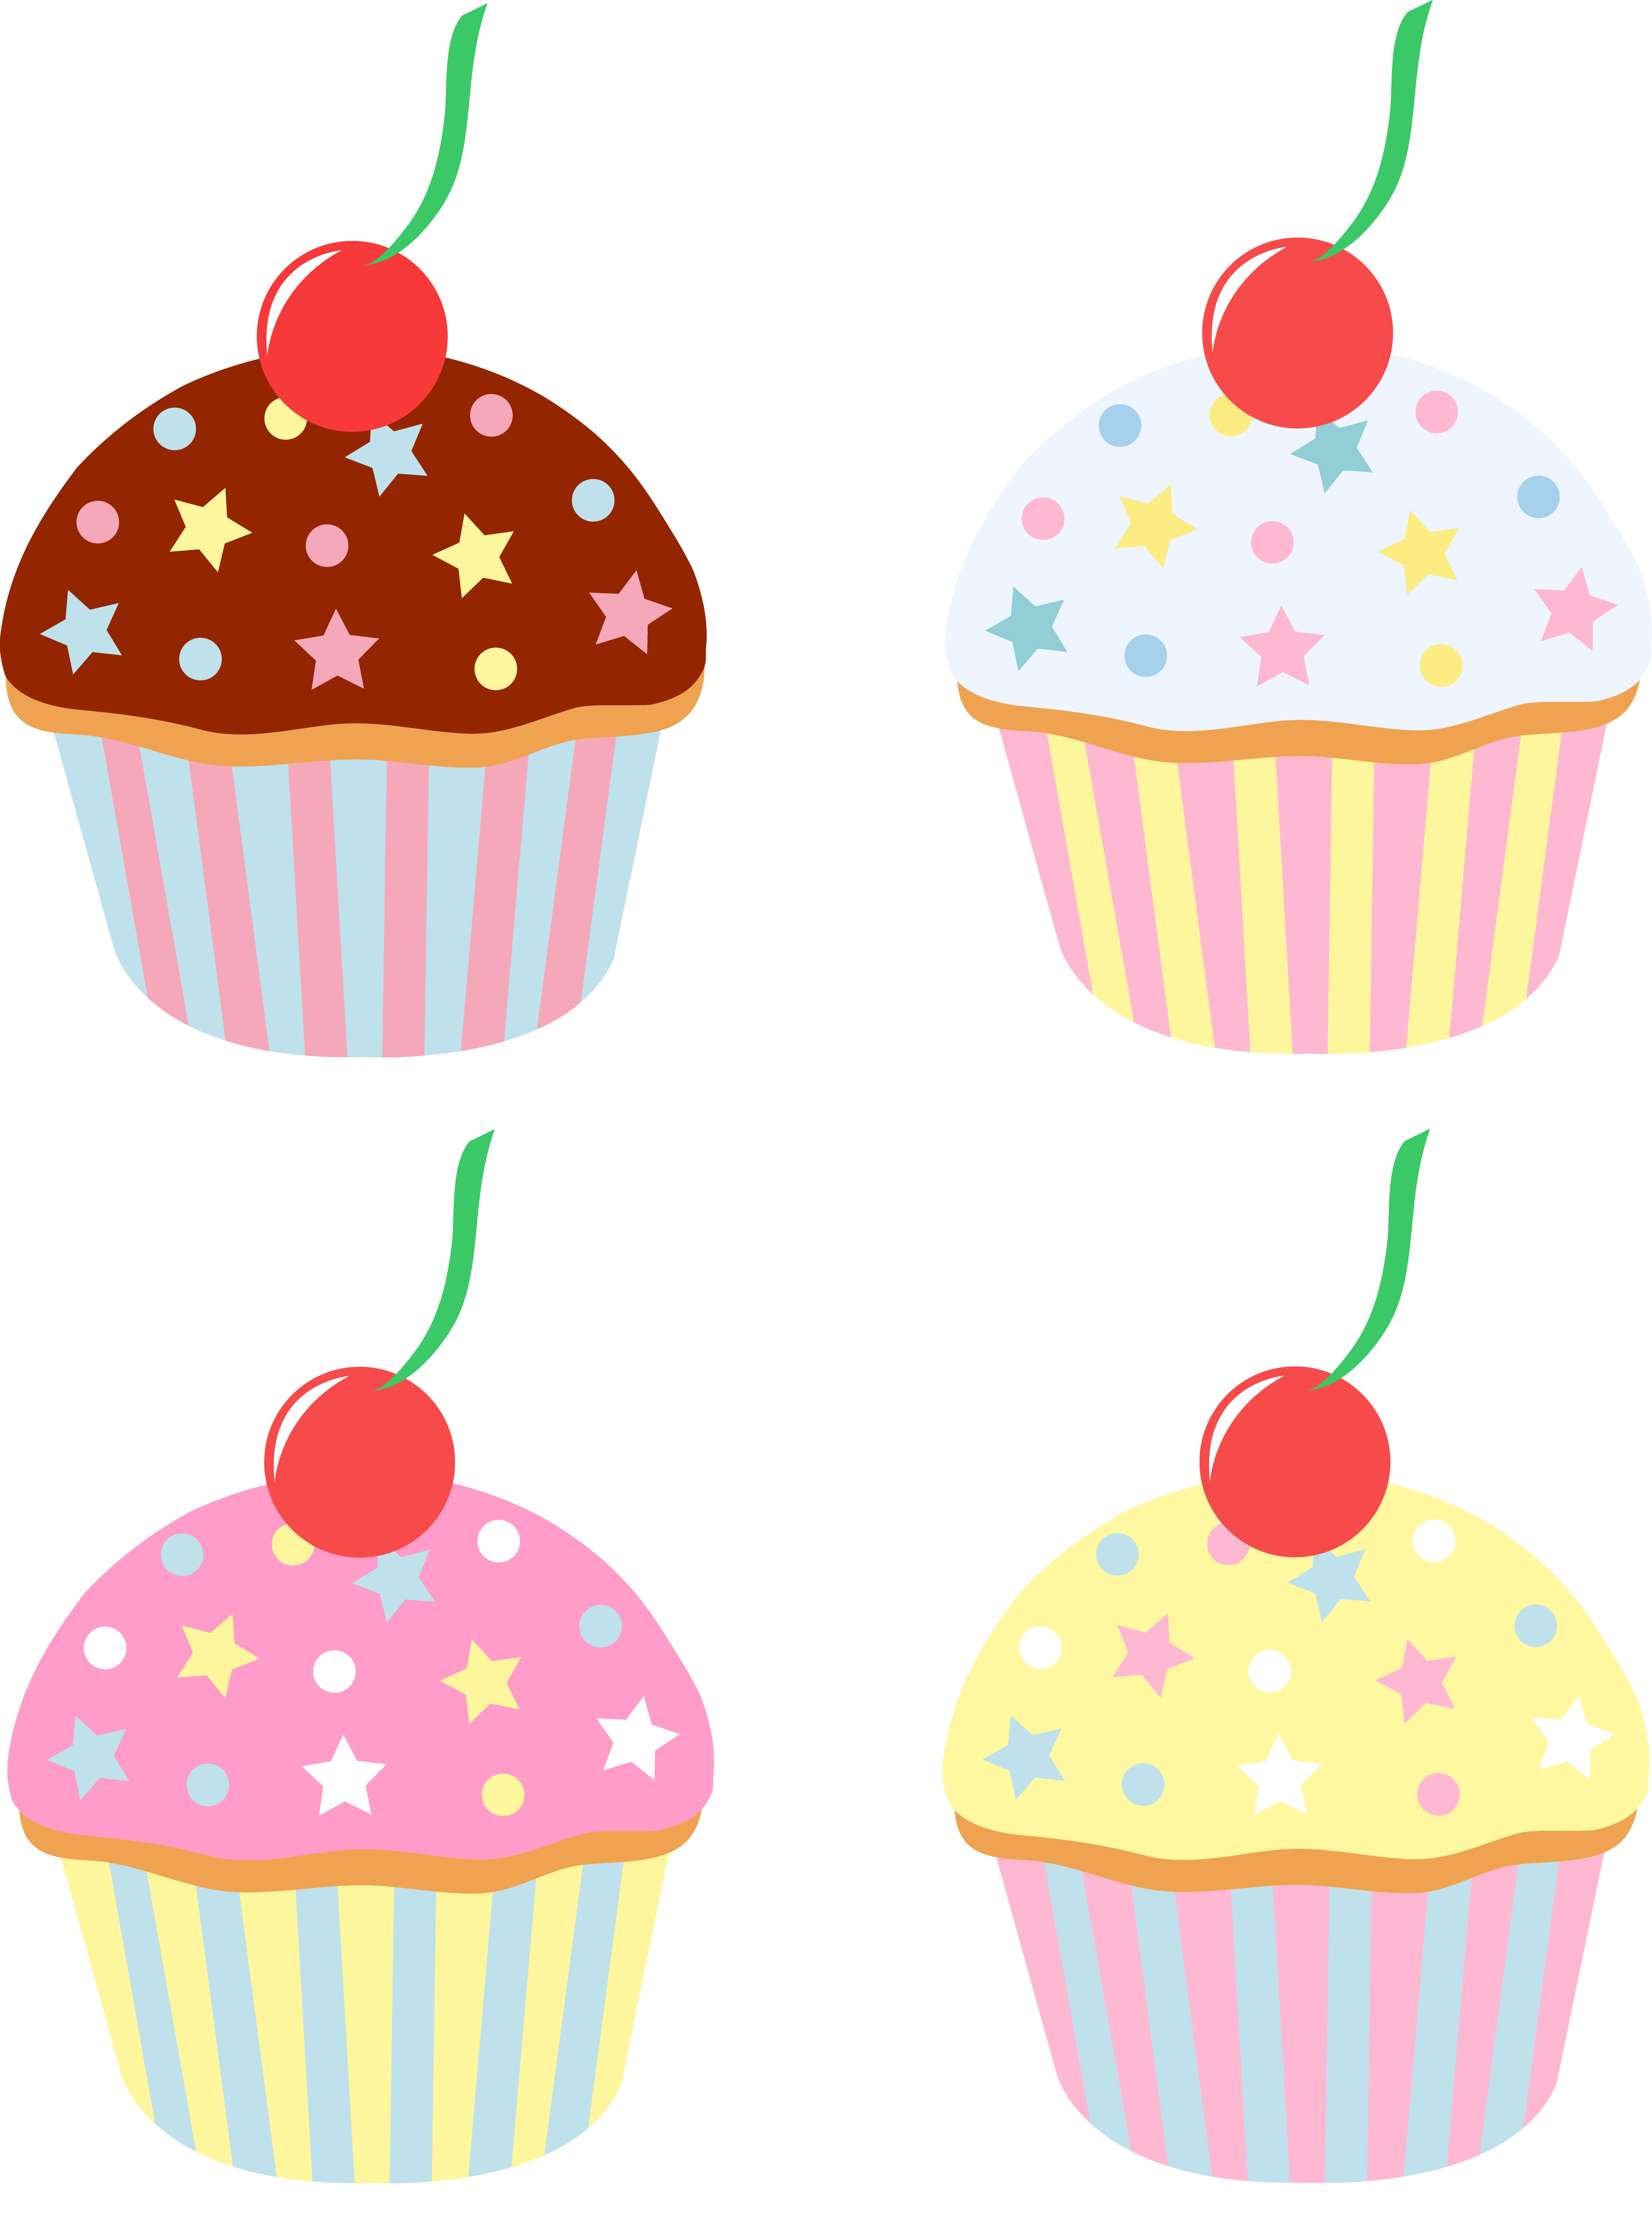 svg royalty free library These sunshine sweet homemade. Muffins clipart strawberry cupcake.